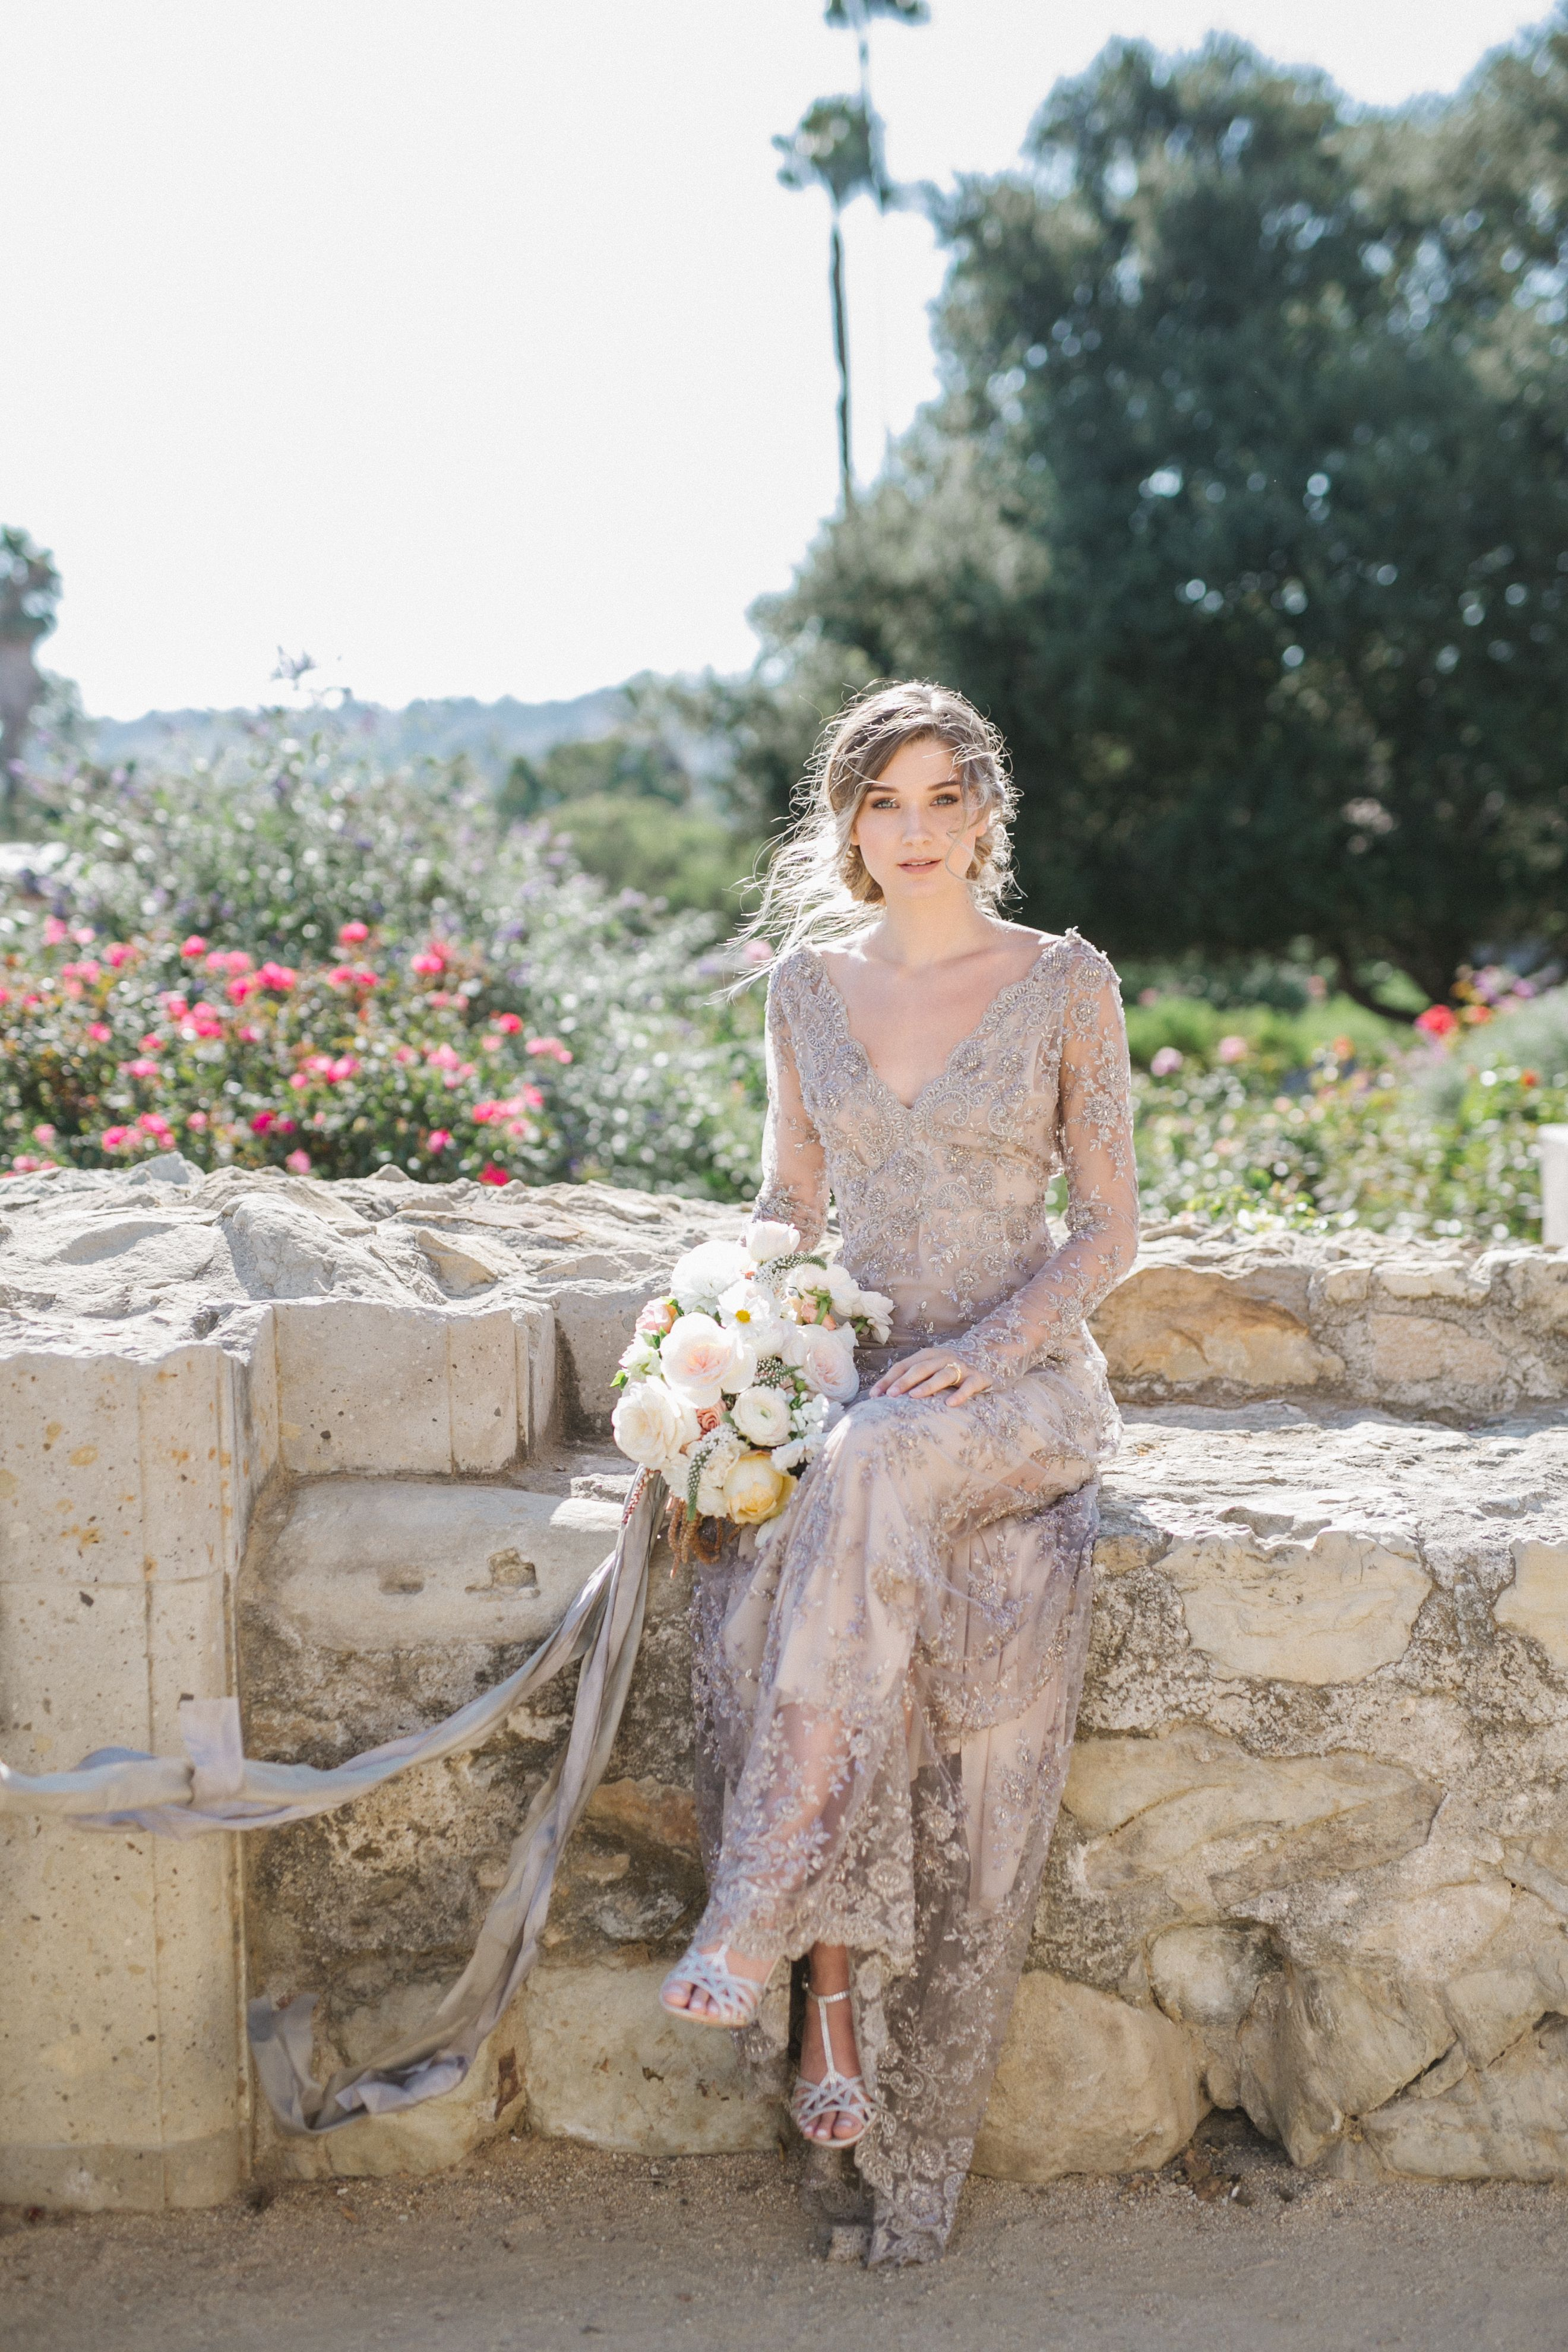 Blending Old + New for Bridal Style in 2020